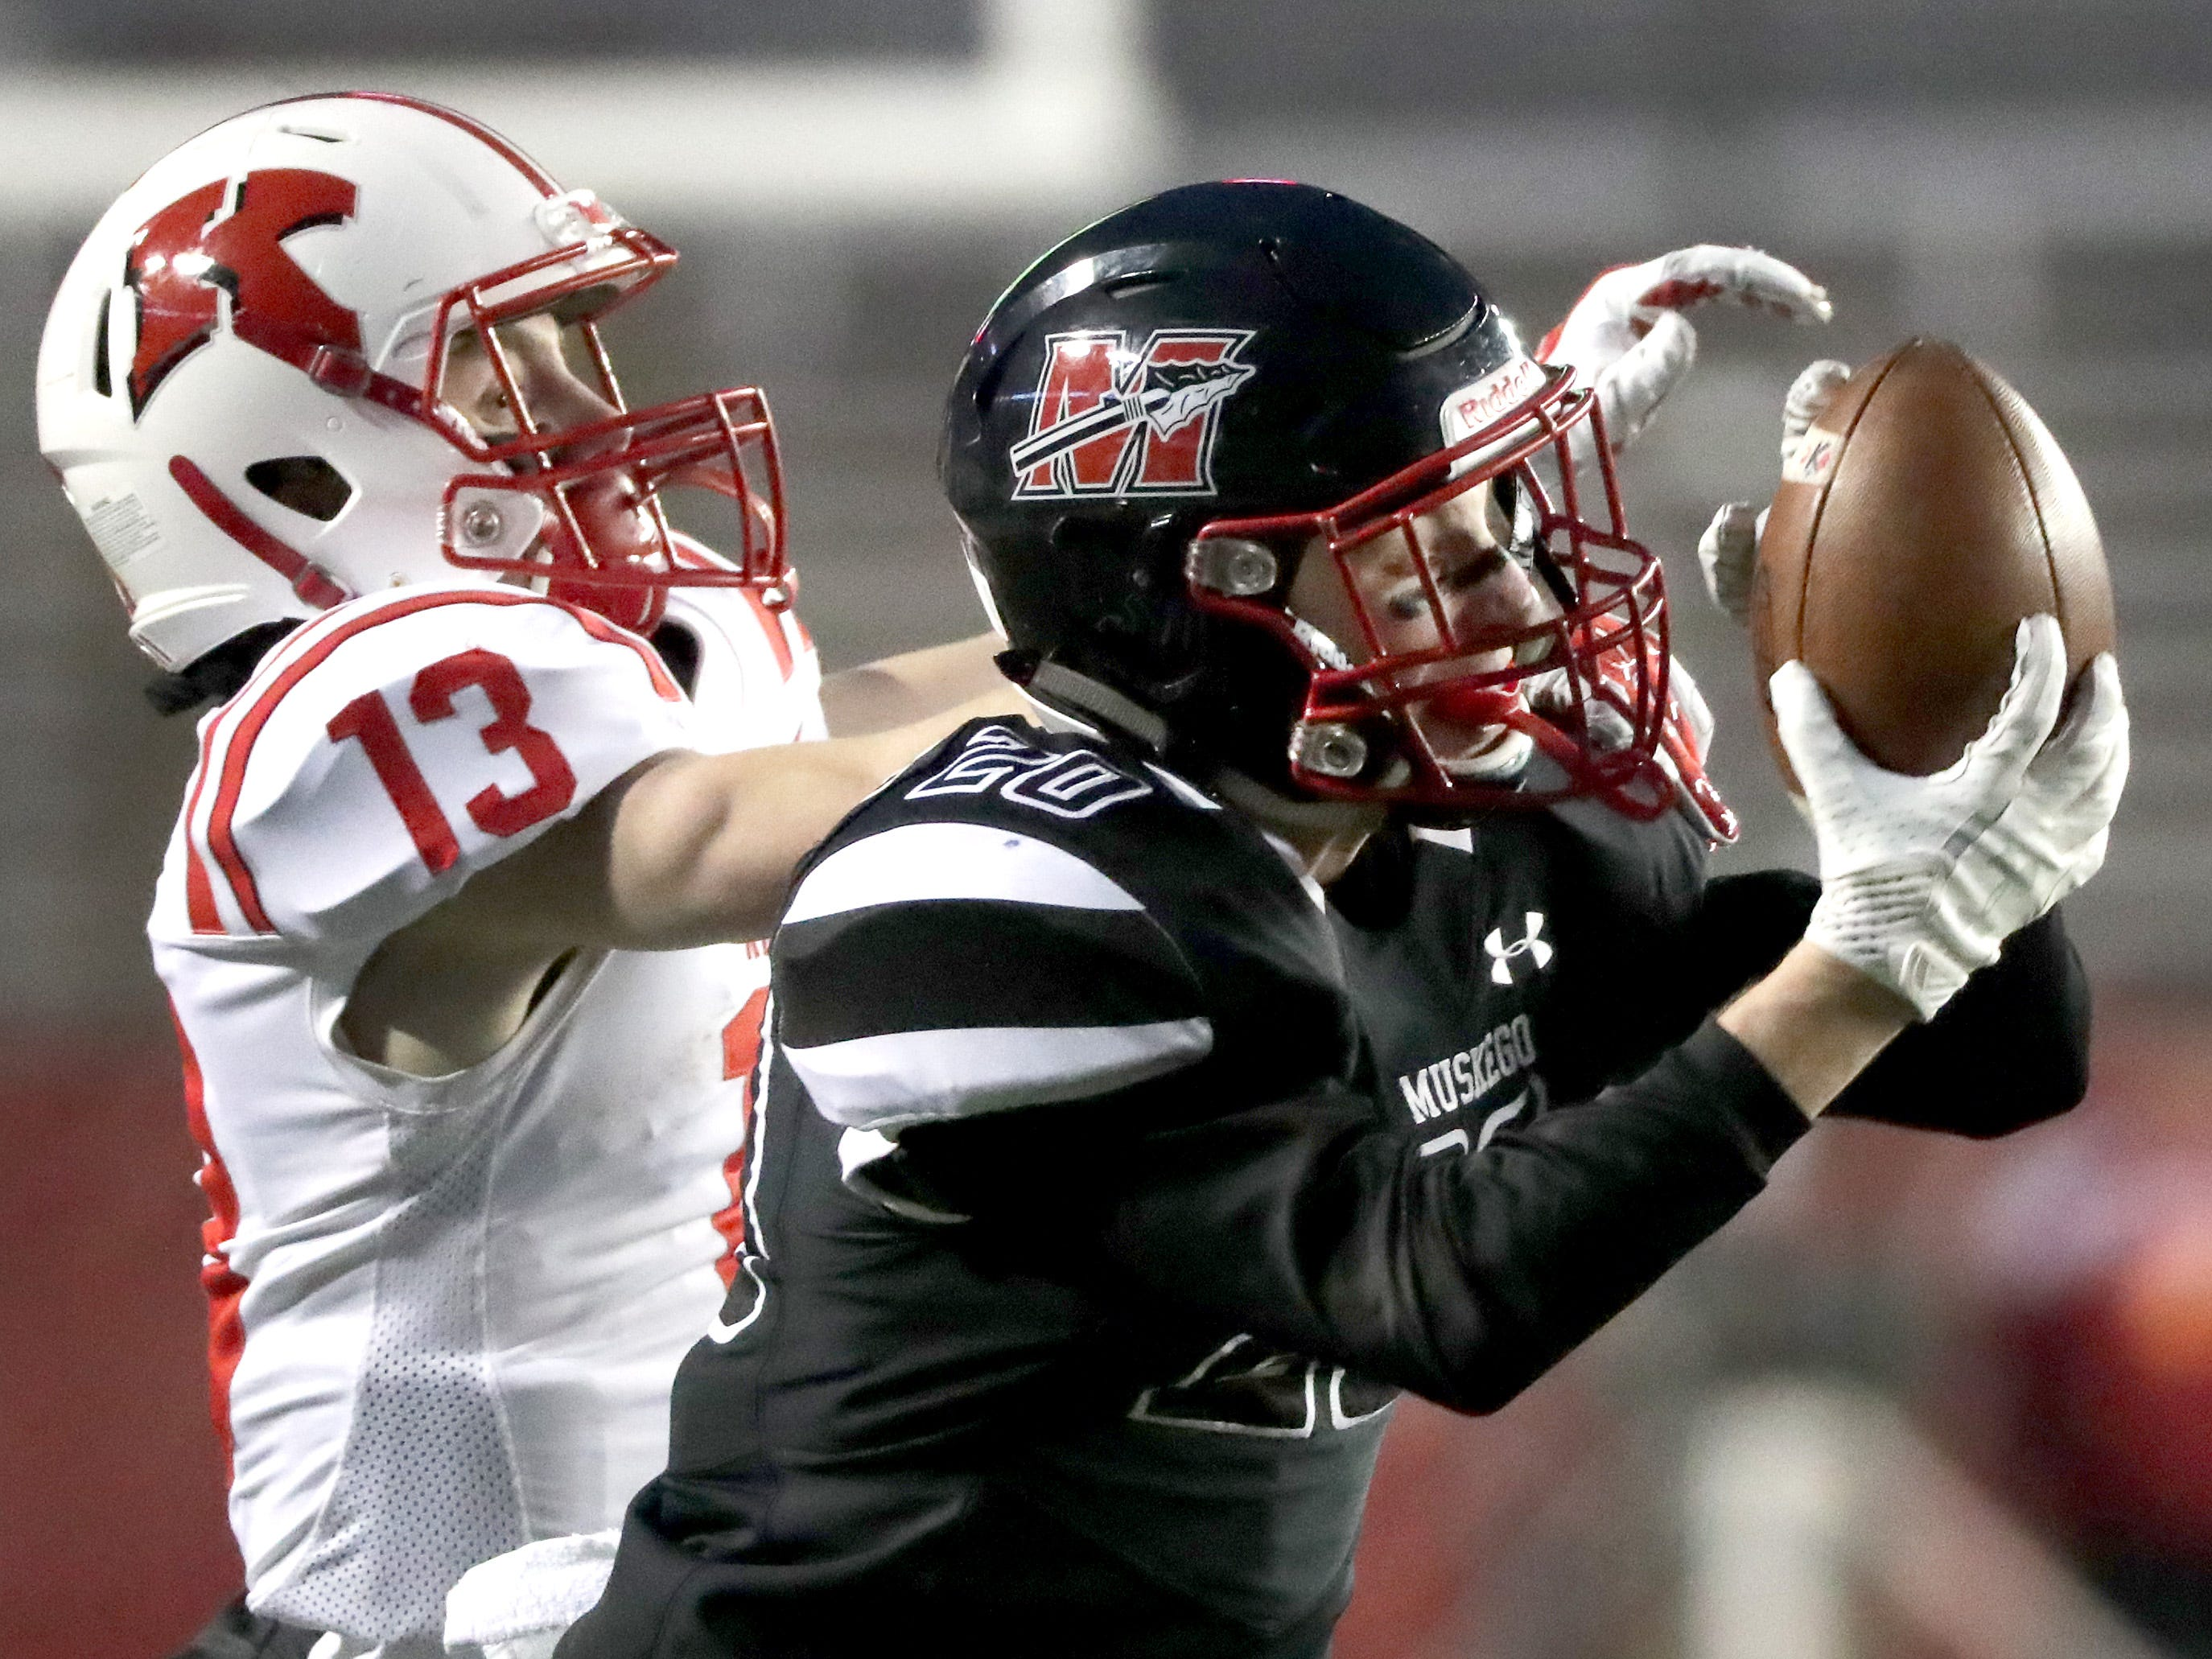 Muskego High School's #20 Sam Chovanec intercepts a pass intended for Kimberly High School's #13 Zach Lechnir during the WIAA Division 1 state championship football game on Friday, November 16, 2018, at Camp Randall in Madison, Wis.